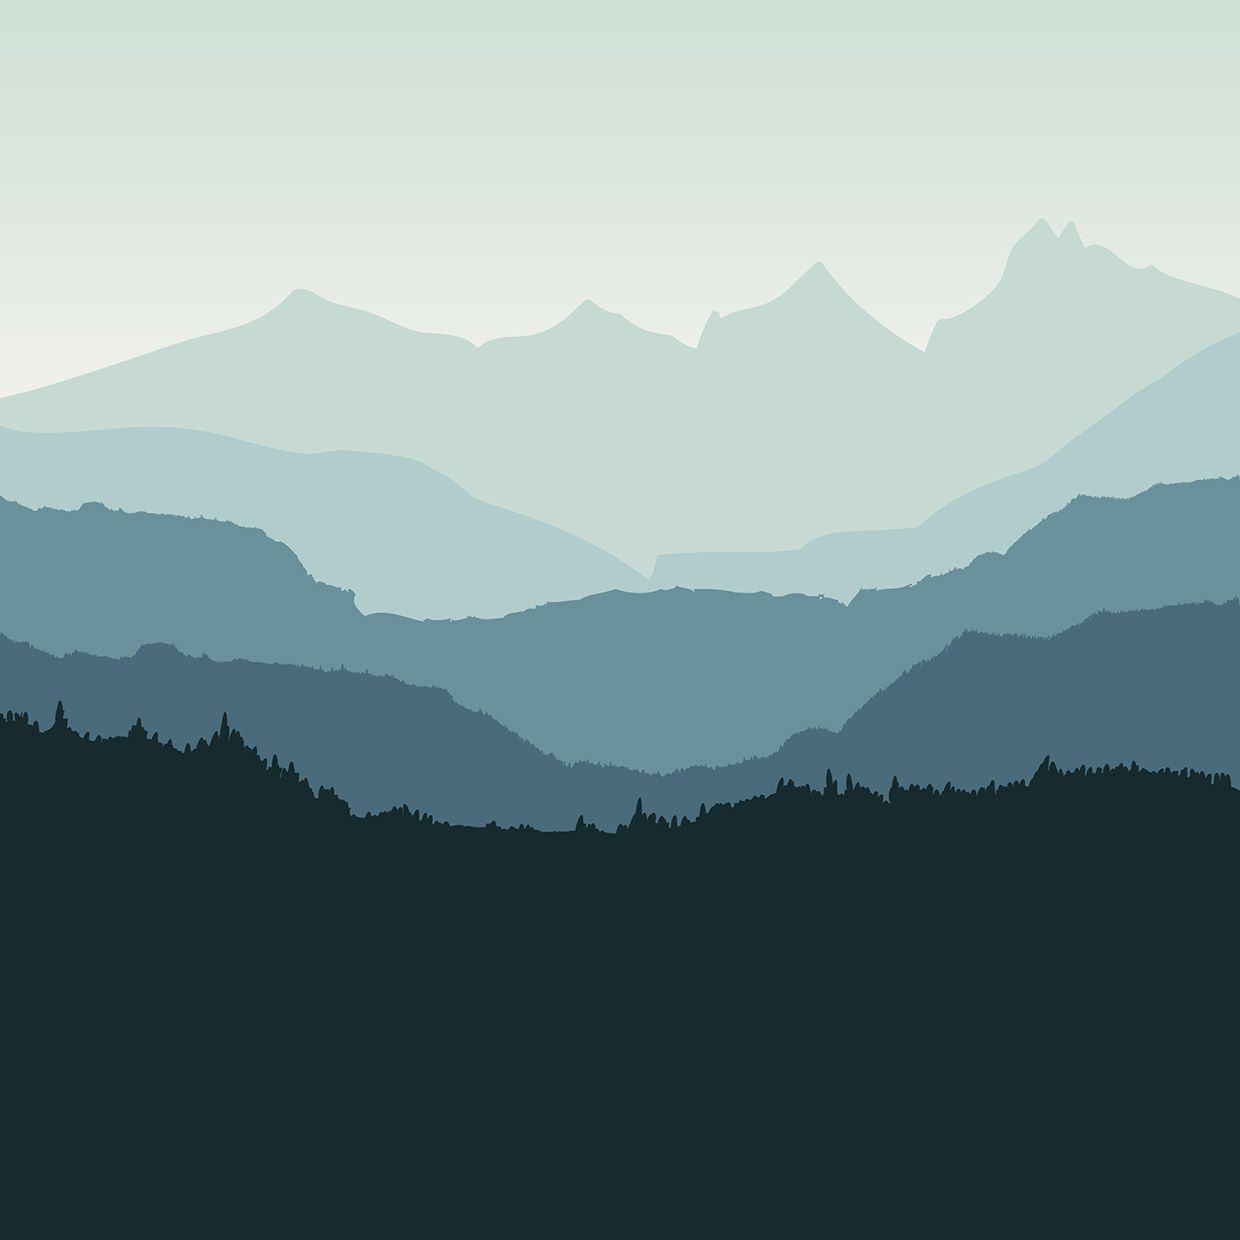 Mountain Background Mountain Illustration Mountain Drawing Background Drawing